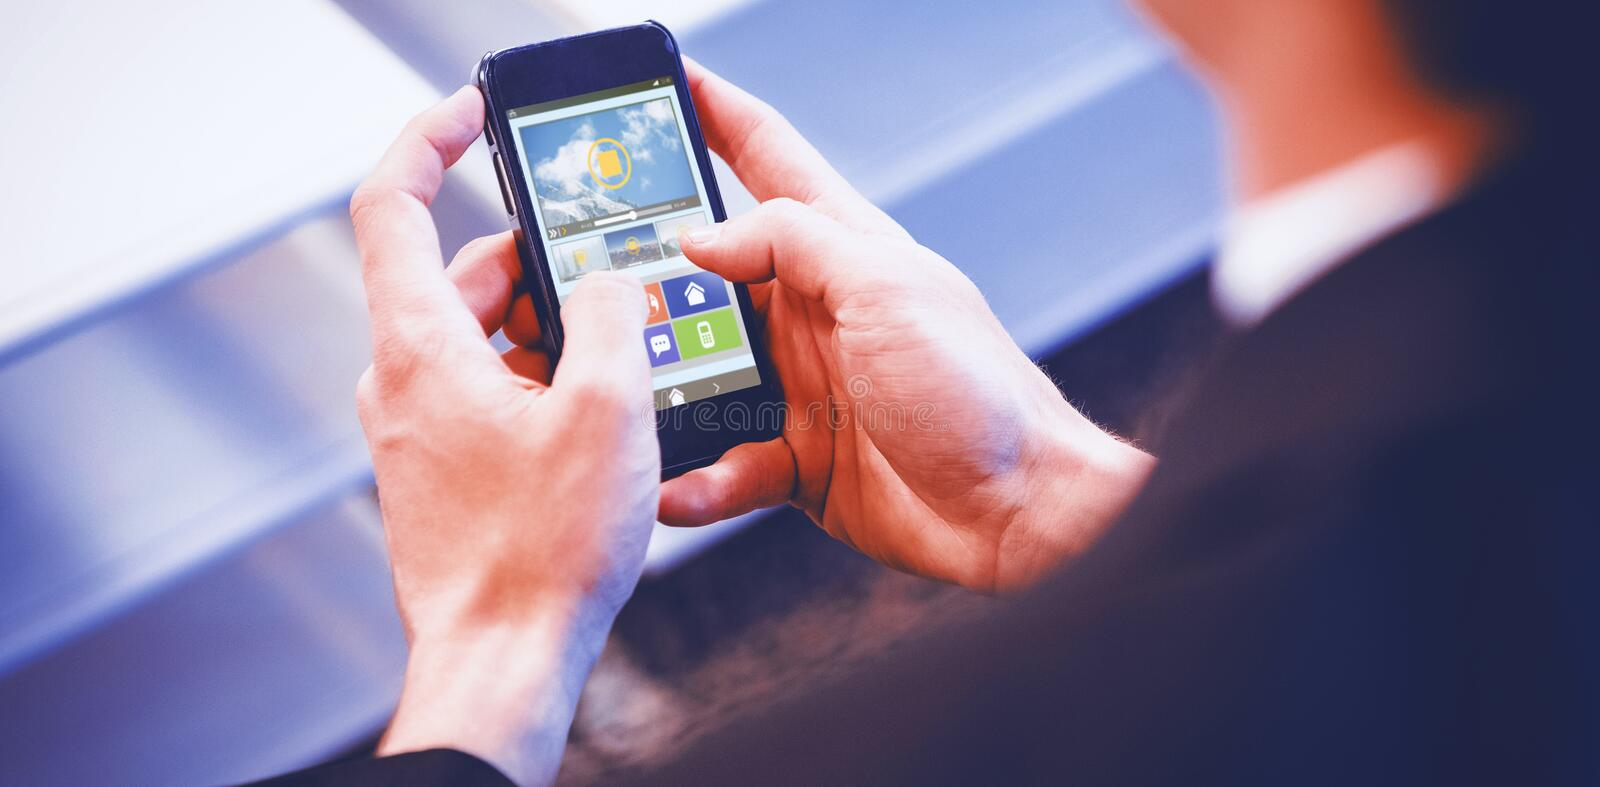 Composite image of graphic image of video player with various icons. Graphic image of video player with various icons against businessman touching smart phone royalty free stock photography